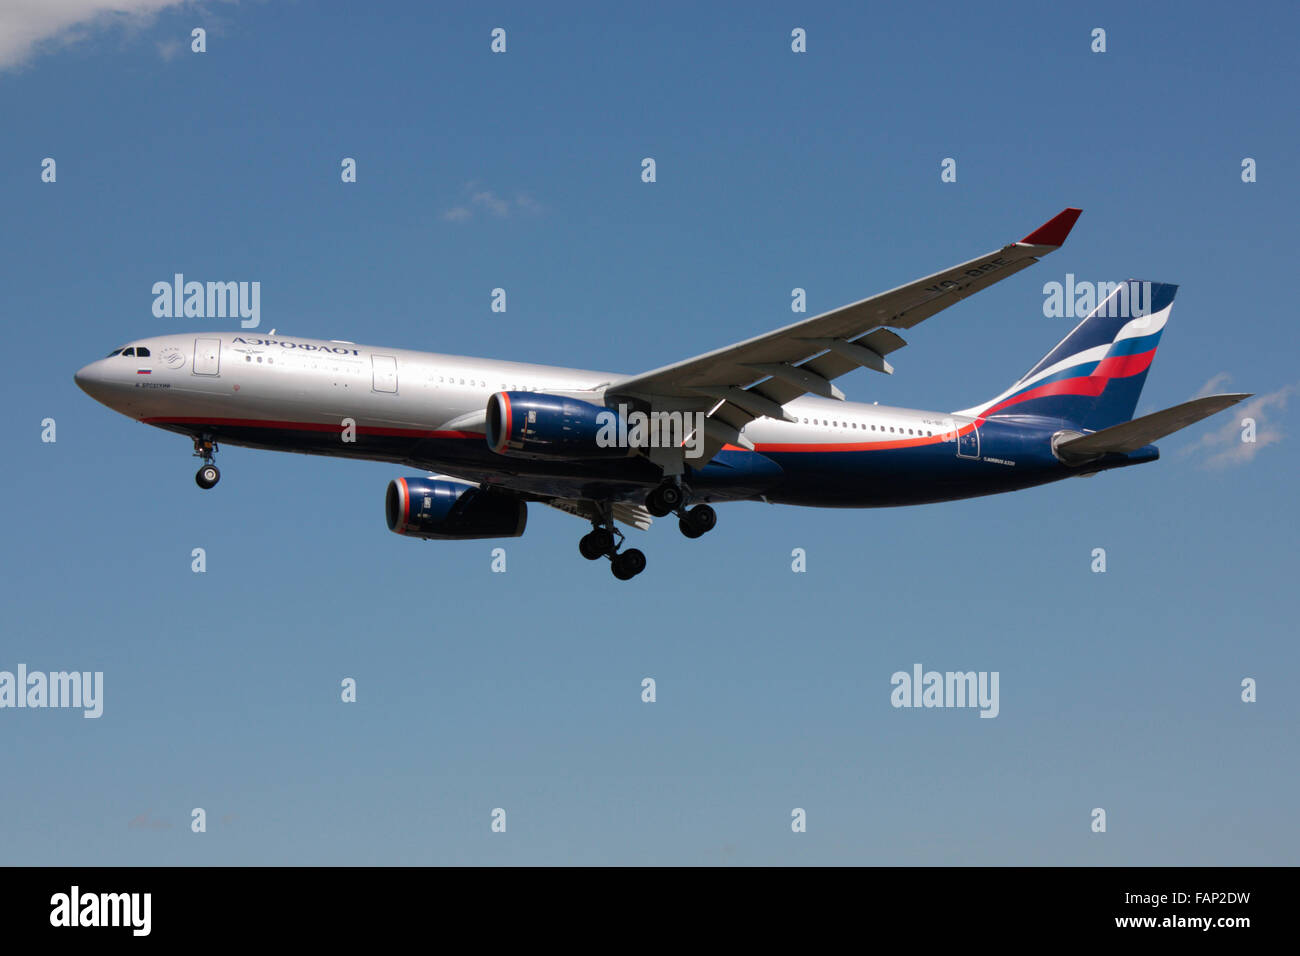 Aeroflot Airbus A330-200 commercial jet plane belonging to Russian national airline Aeroflot on approach - Stock Image